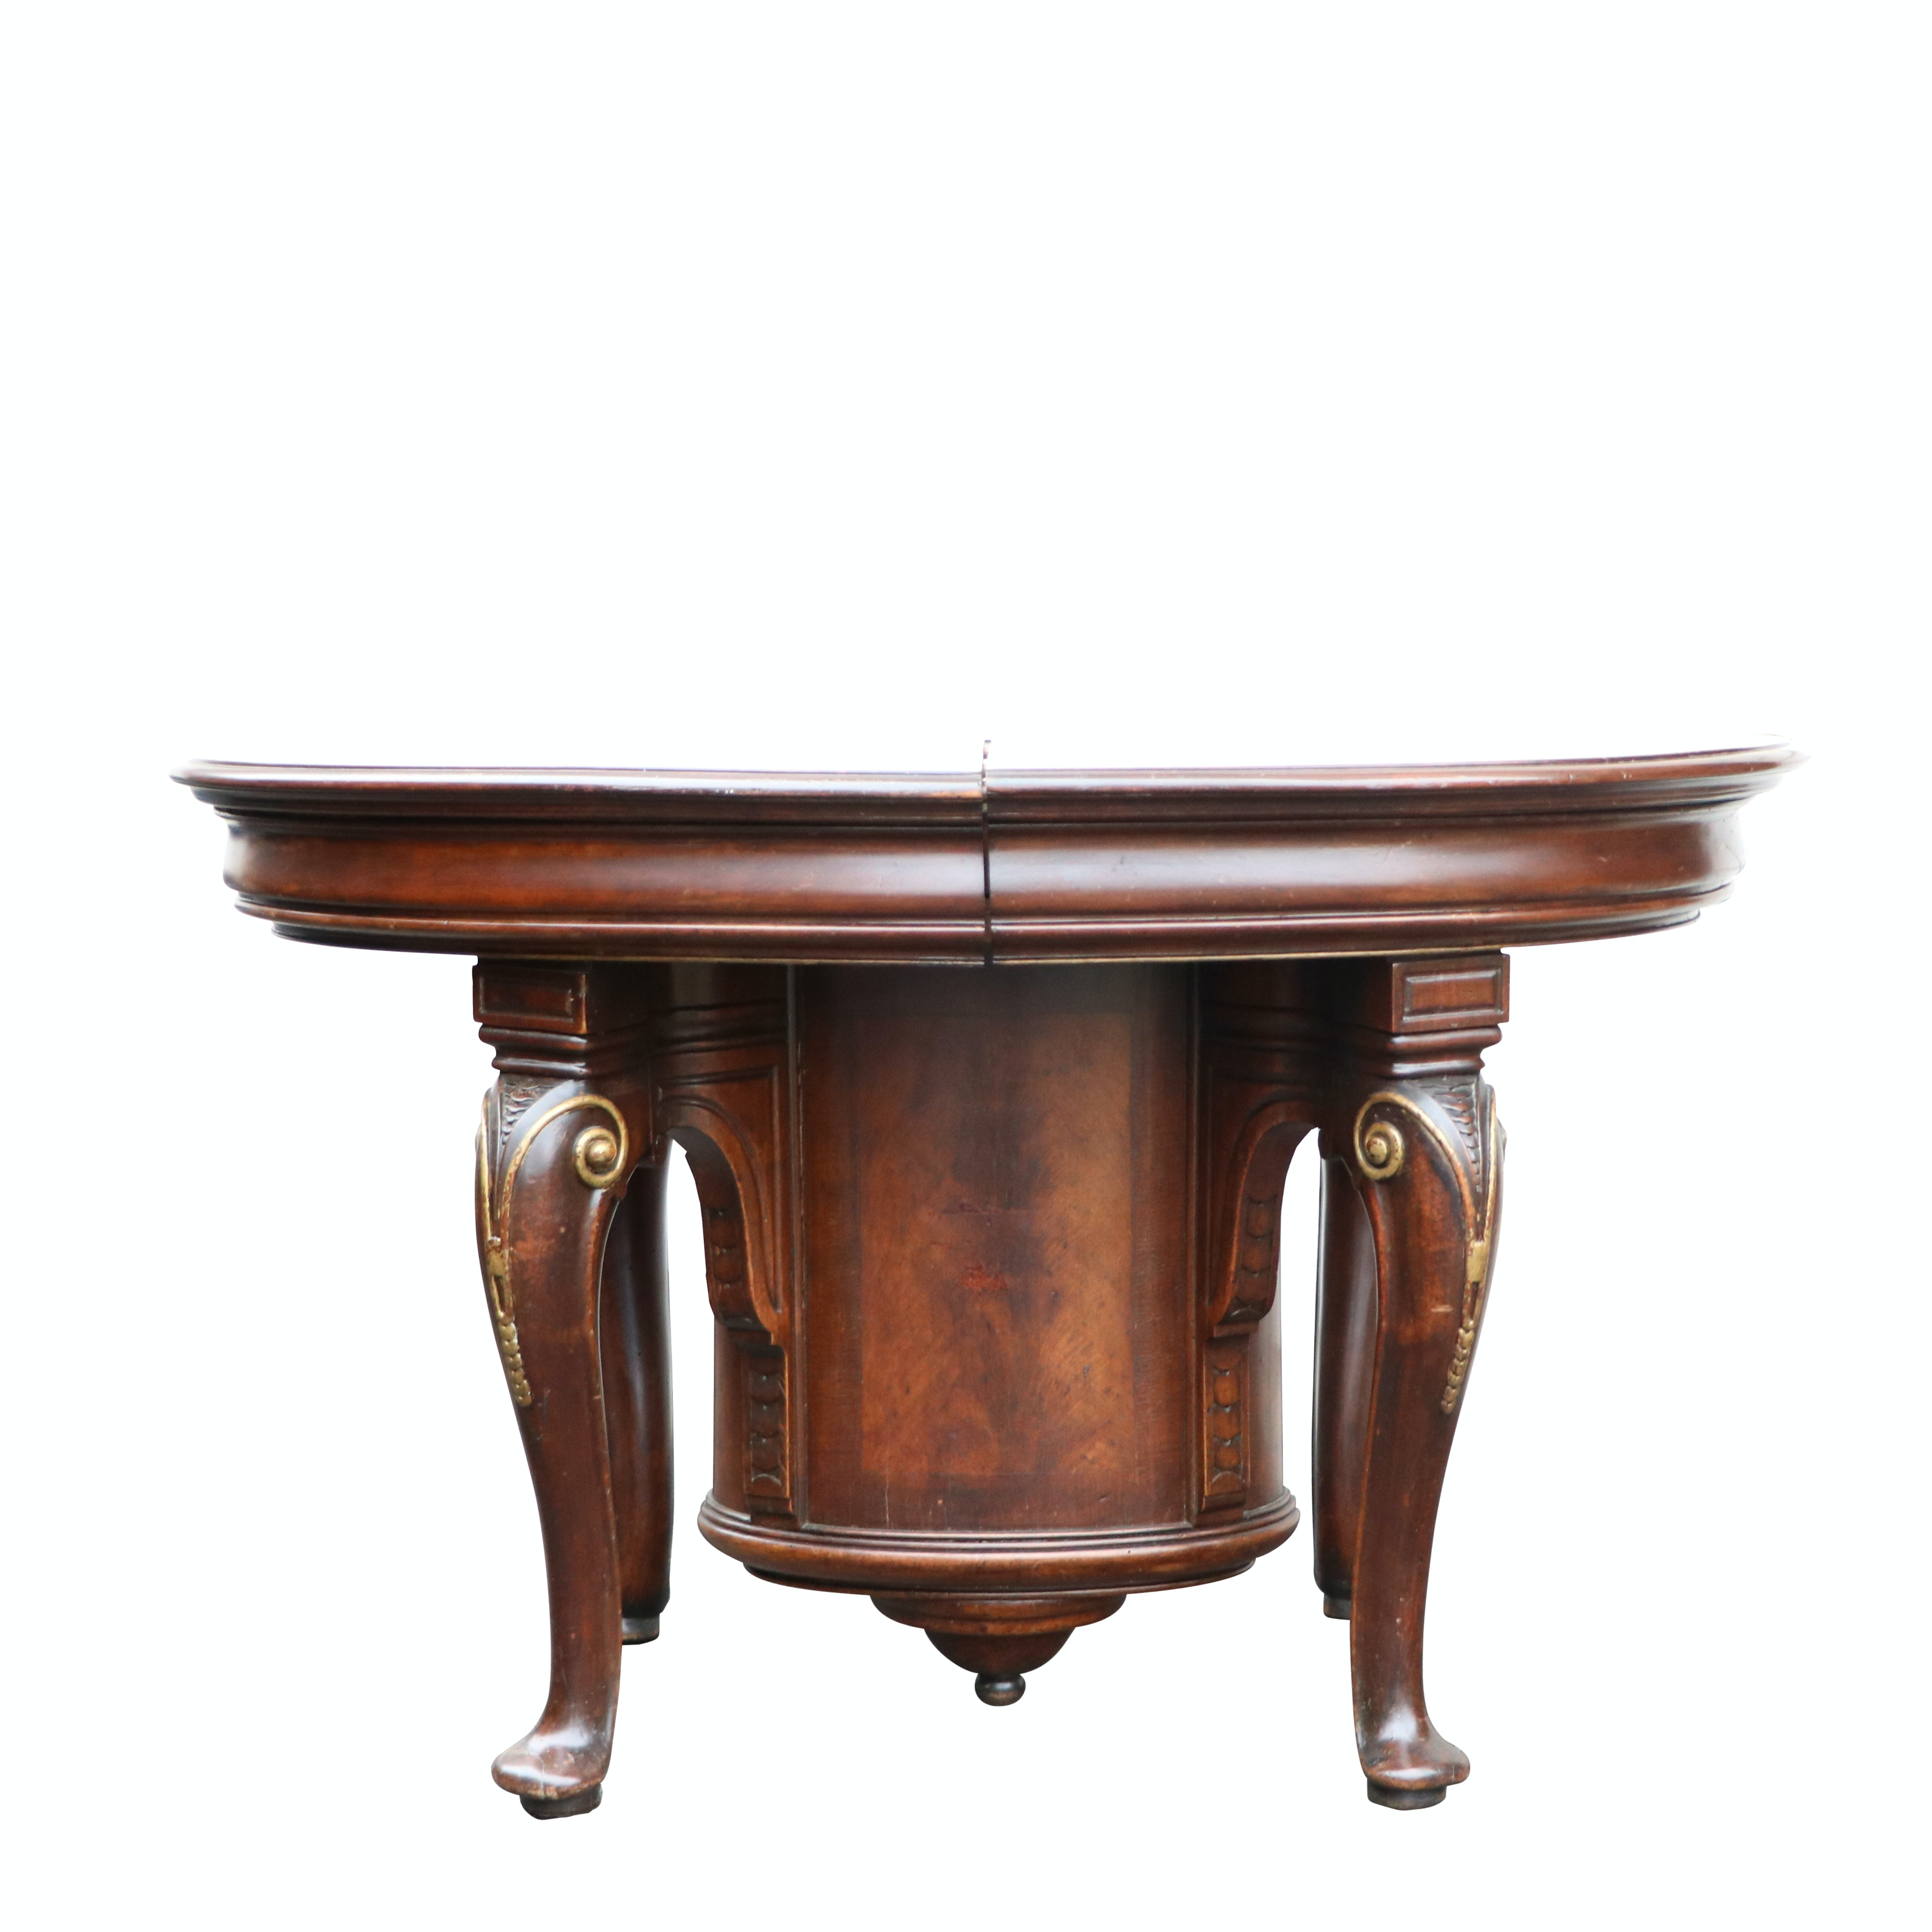 Antique Empire Style Dining Table with Barrel Support